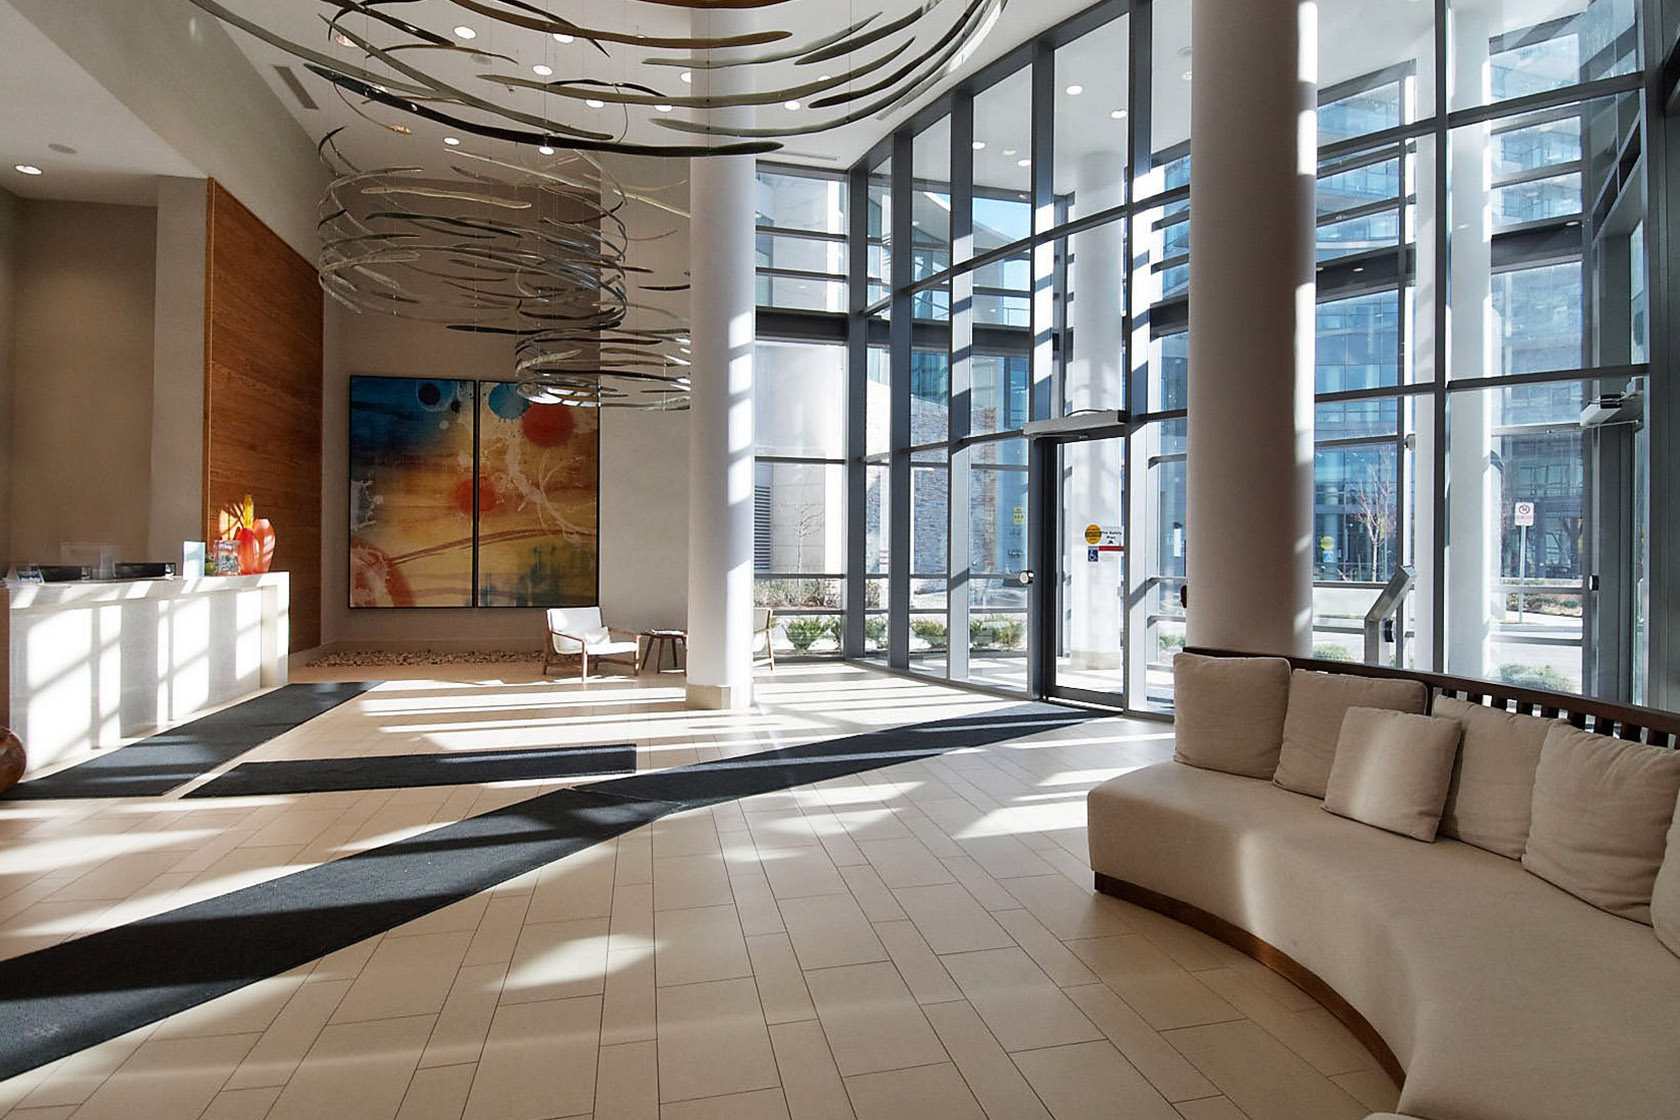 beyond the sea Beyond The Sea Condos | Monthly Featured Condo | July 2017 15 legion rd toronto beyond the sea north tower condos etobicoke condos parklawn condos front entrance foyer